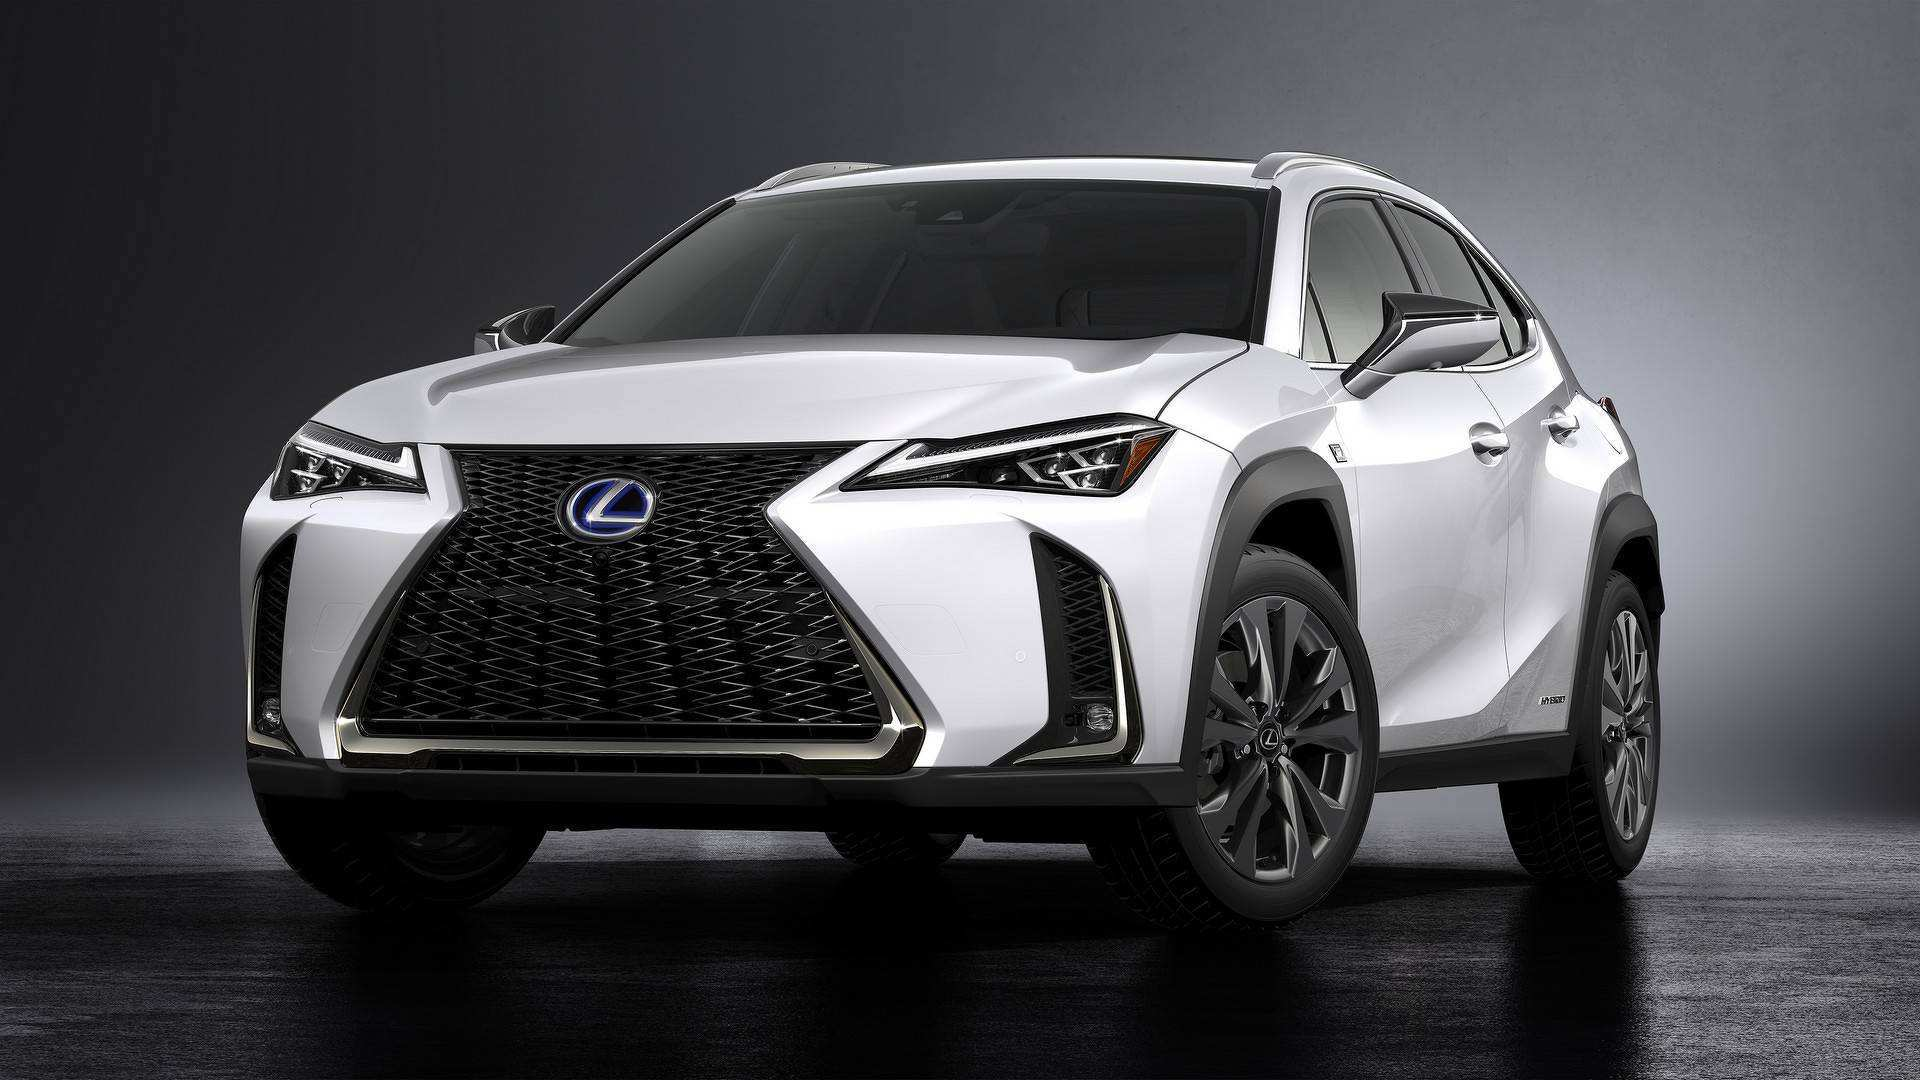 47 All New Lexus 2019 Models Interior by Lexus 2019 Models